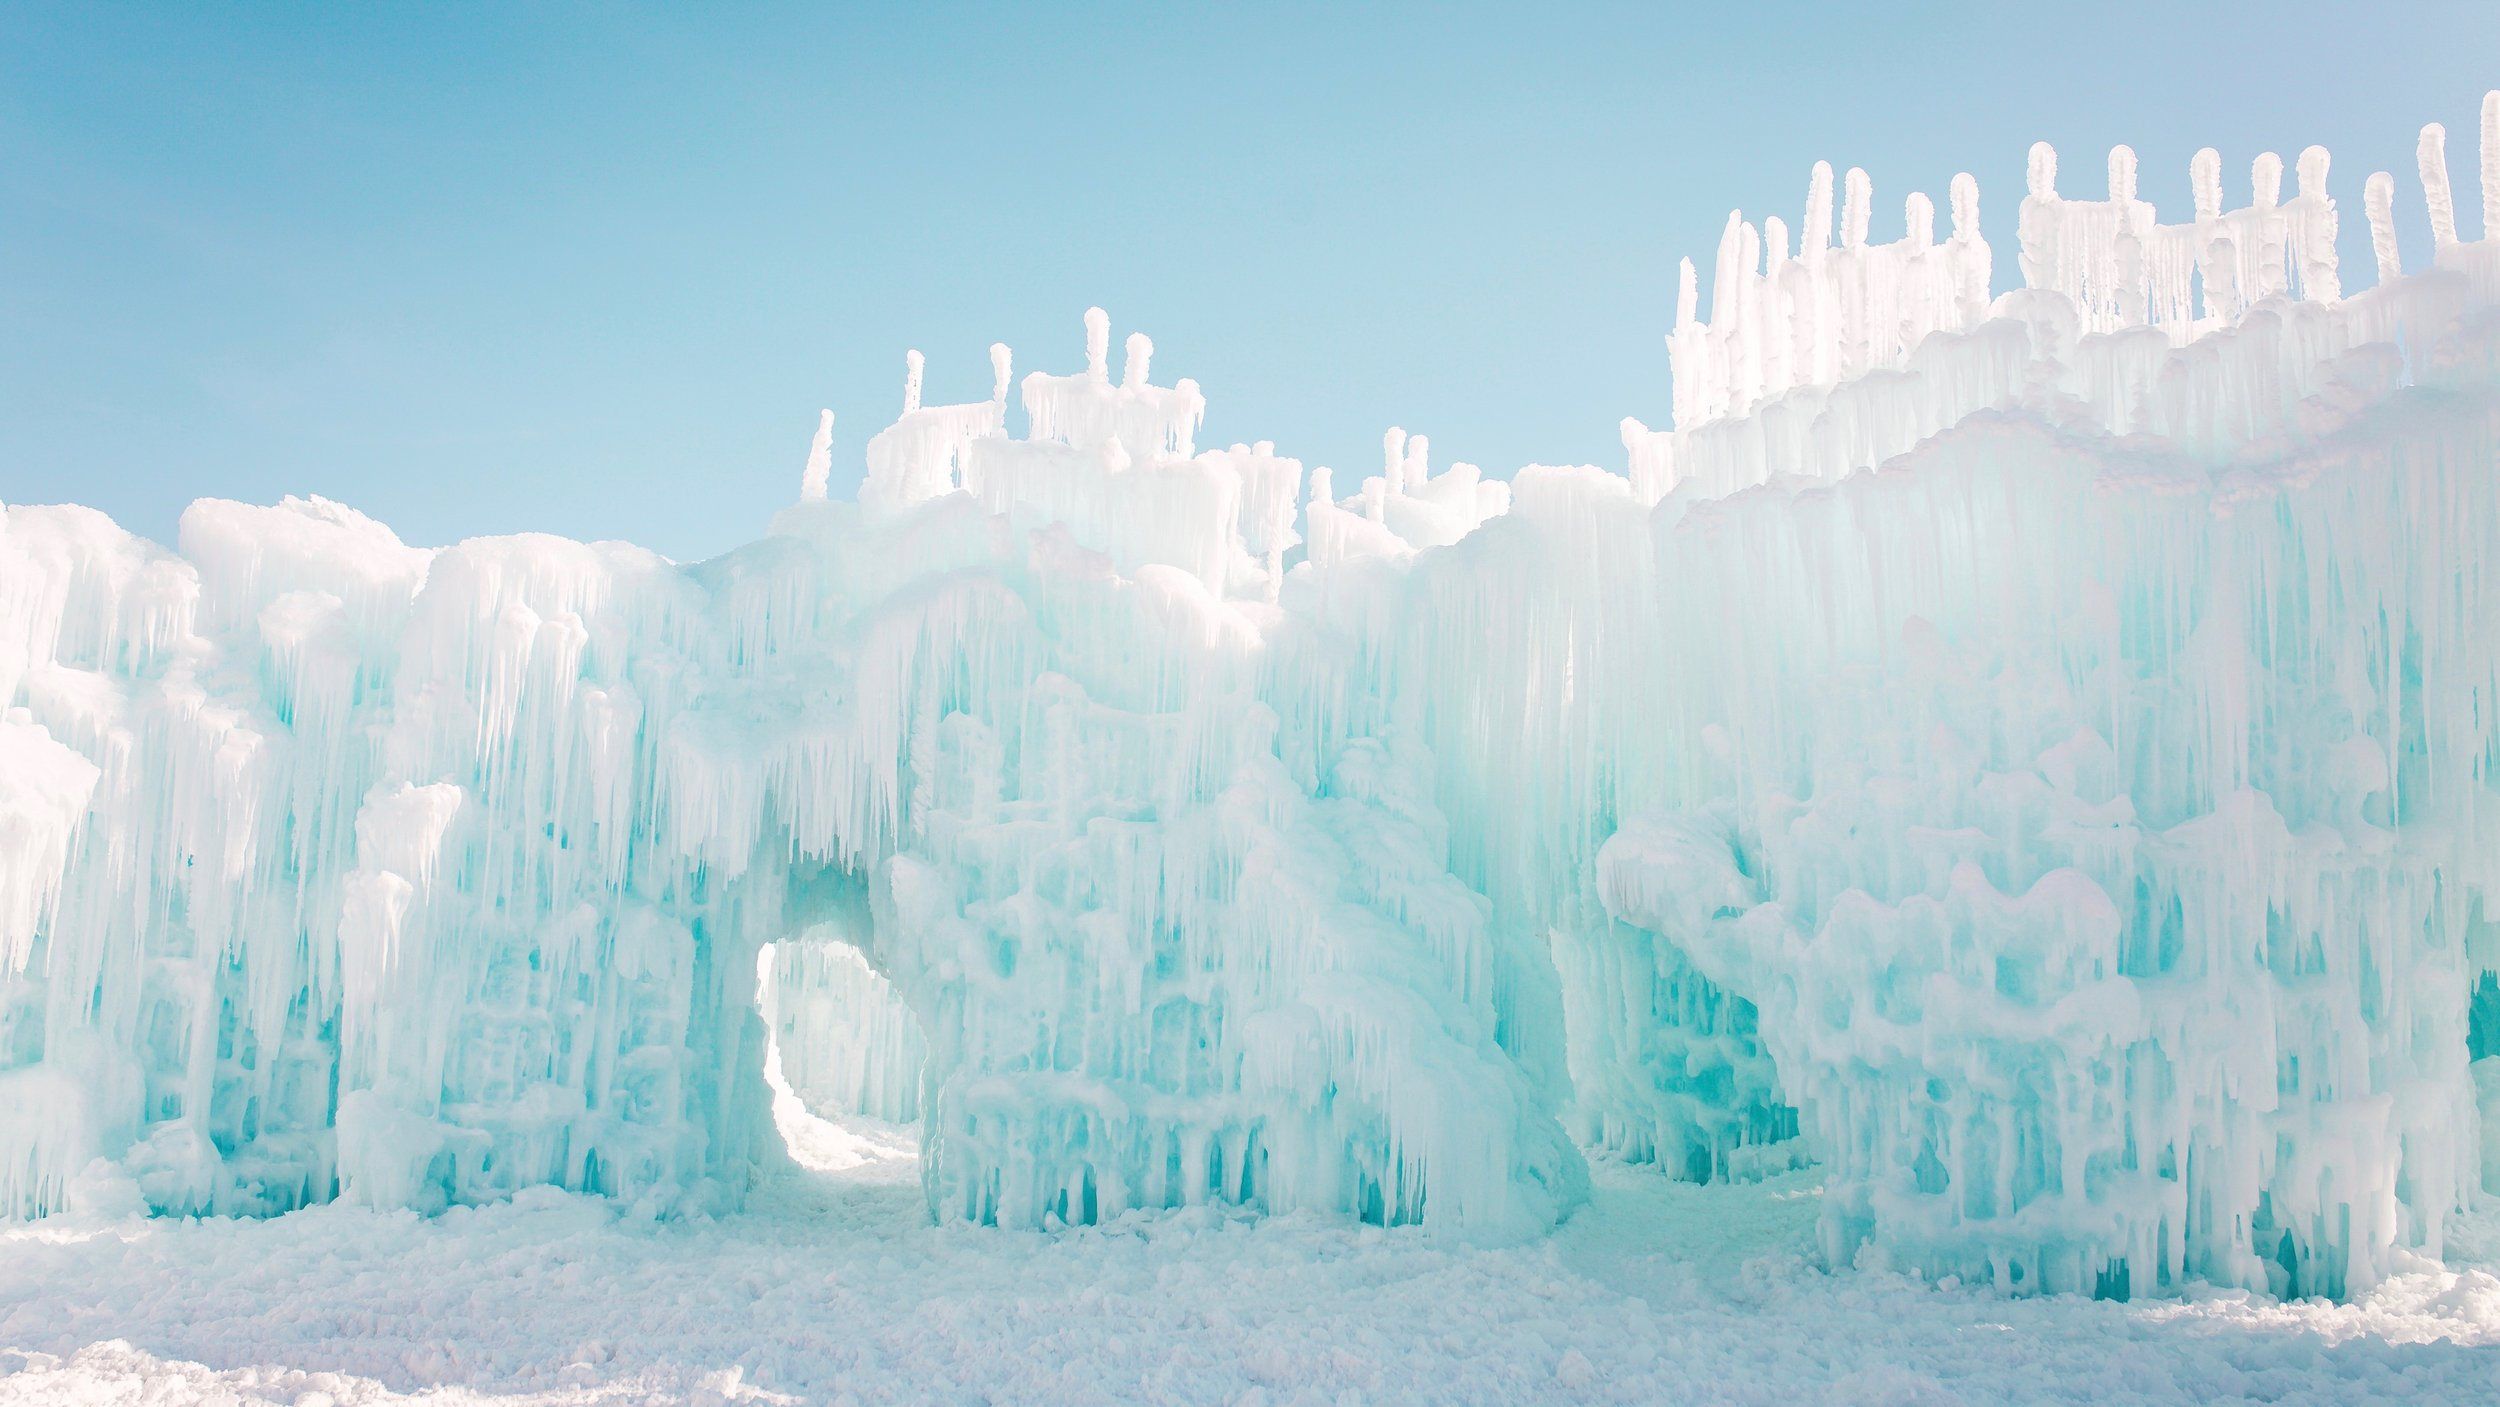 Ice Castles in Midway, Utah, USA